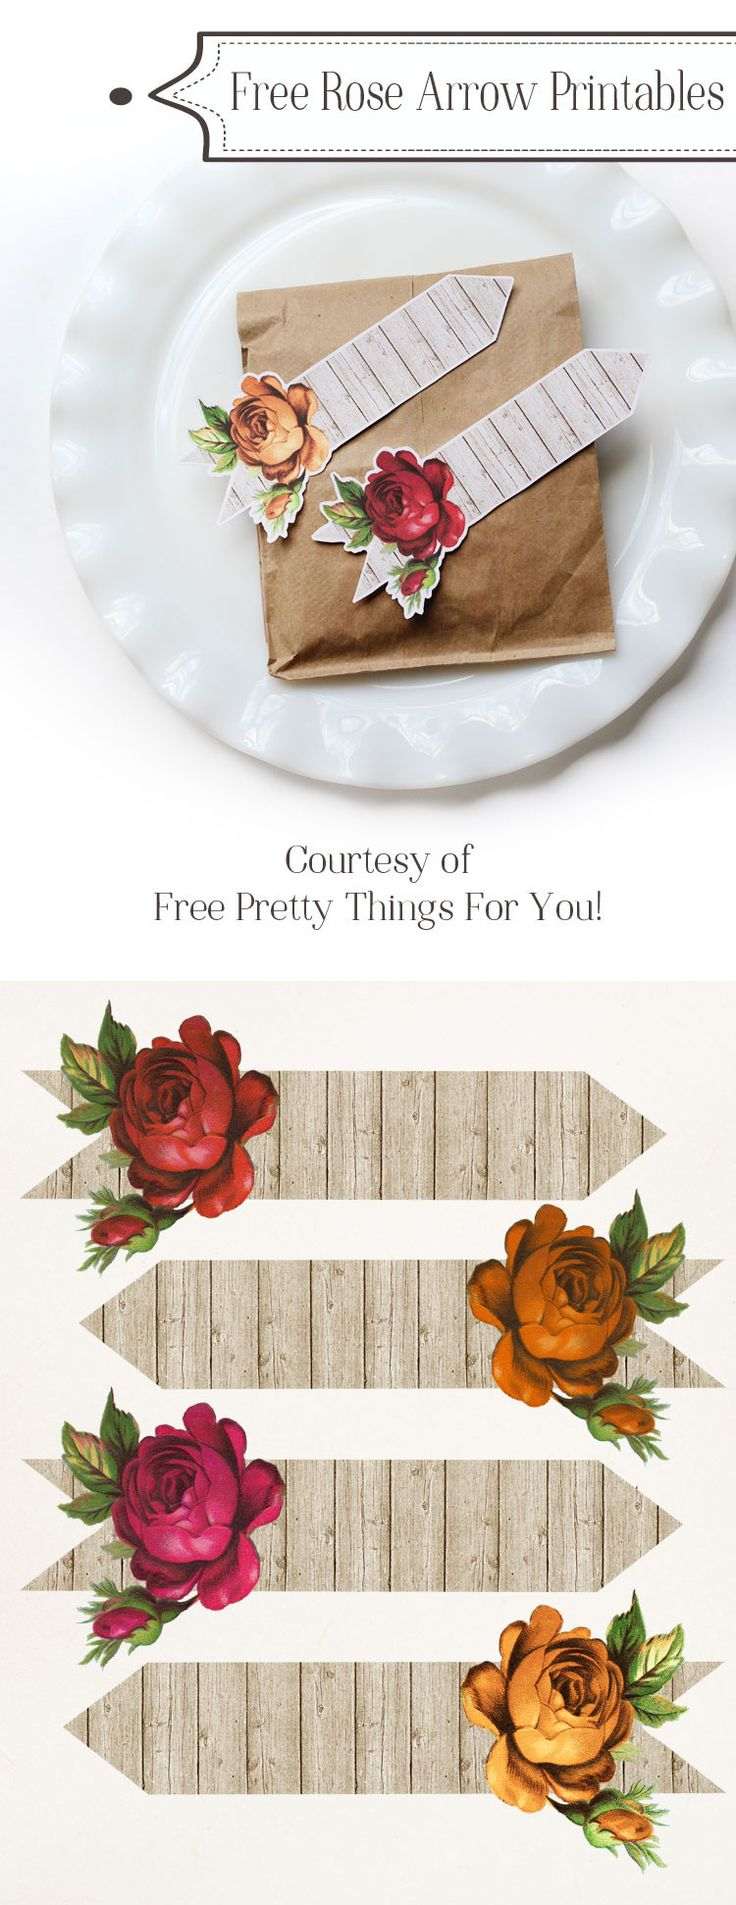 Free Autumn Rose Arrow Printables! These romantic shabby arrows would be gorgeous as a favor tag in a fall wedding, don't you think?